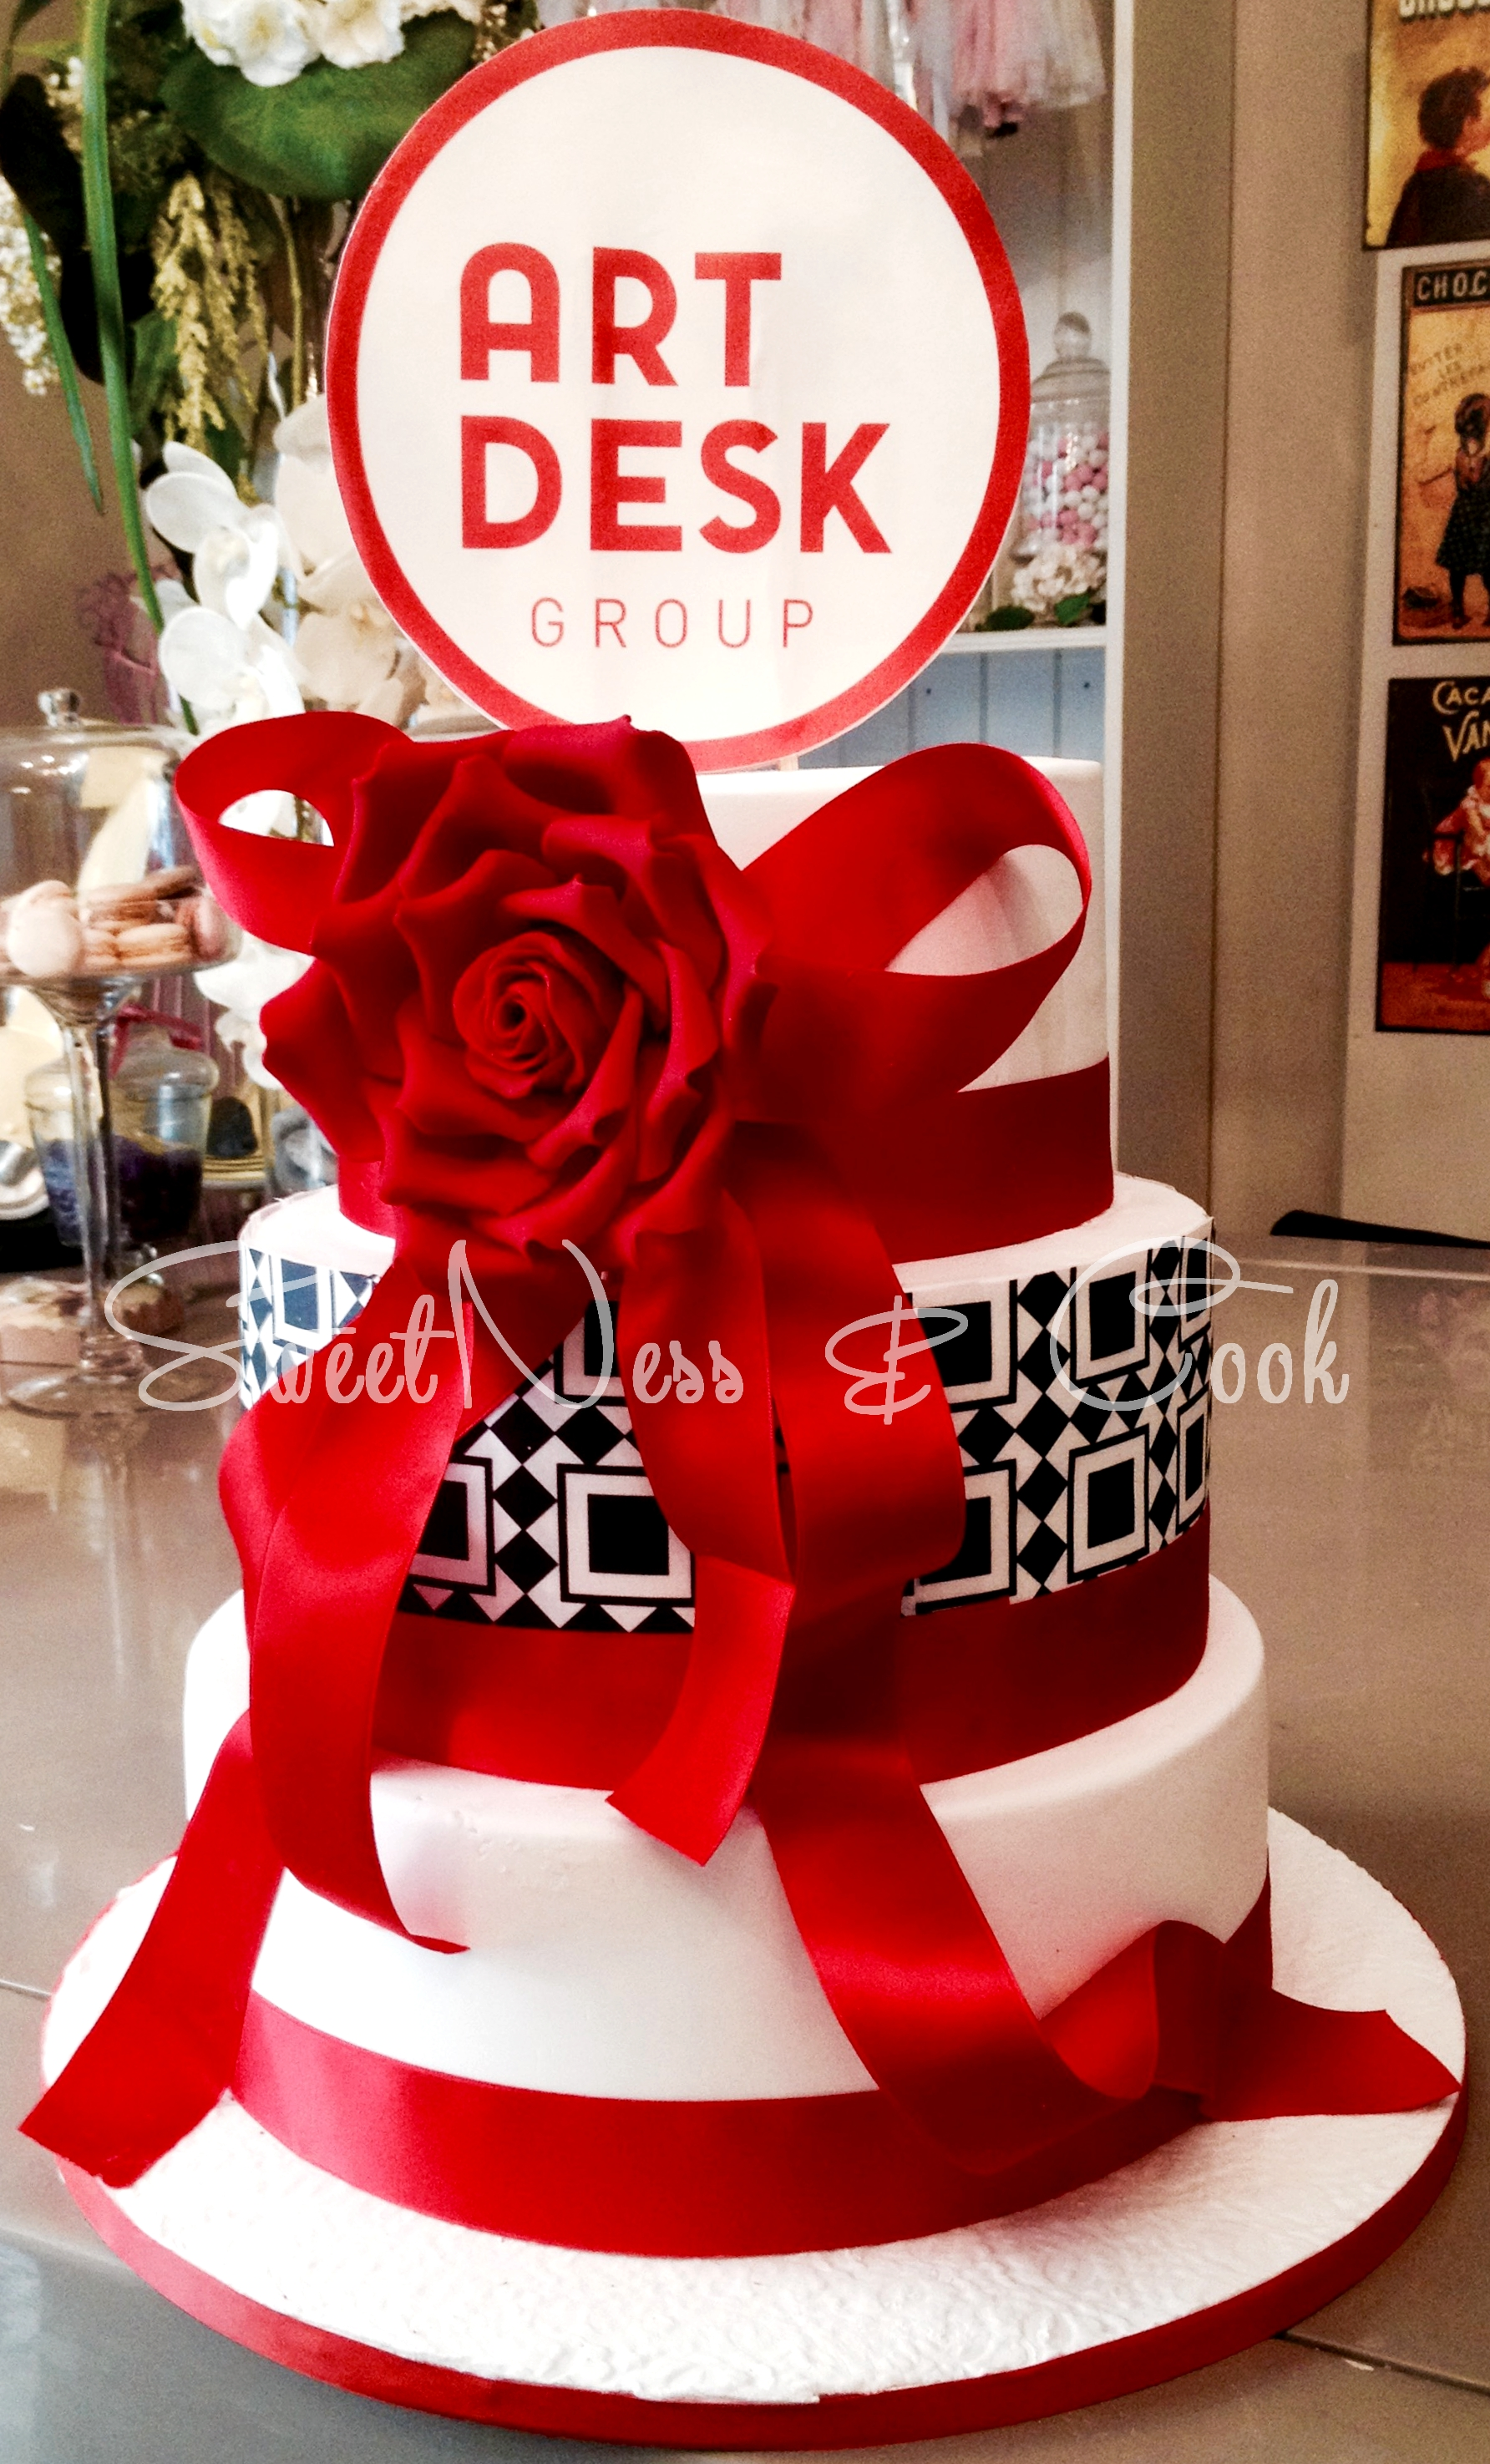 Wedding Cake ArtDesk